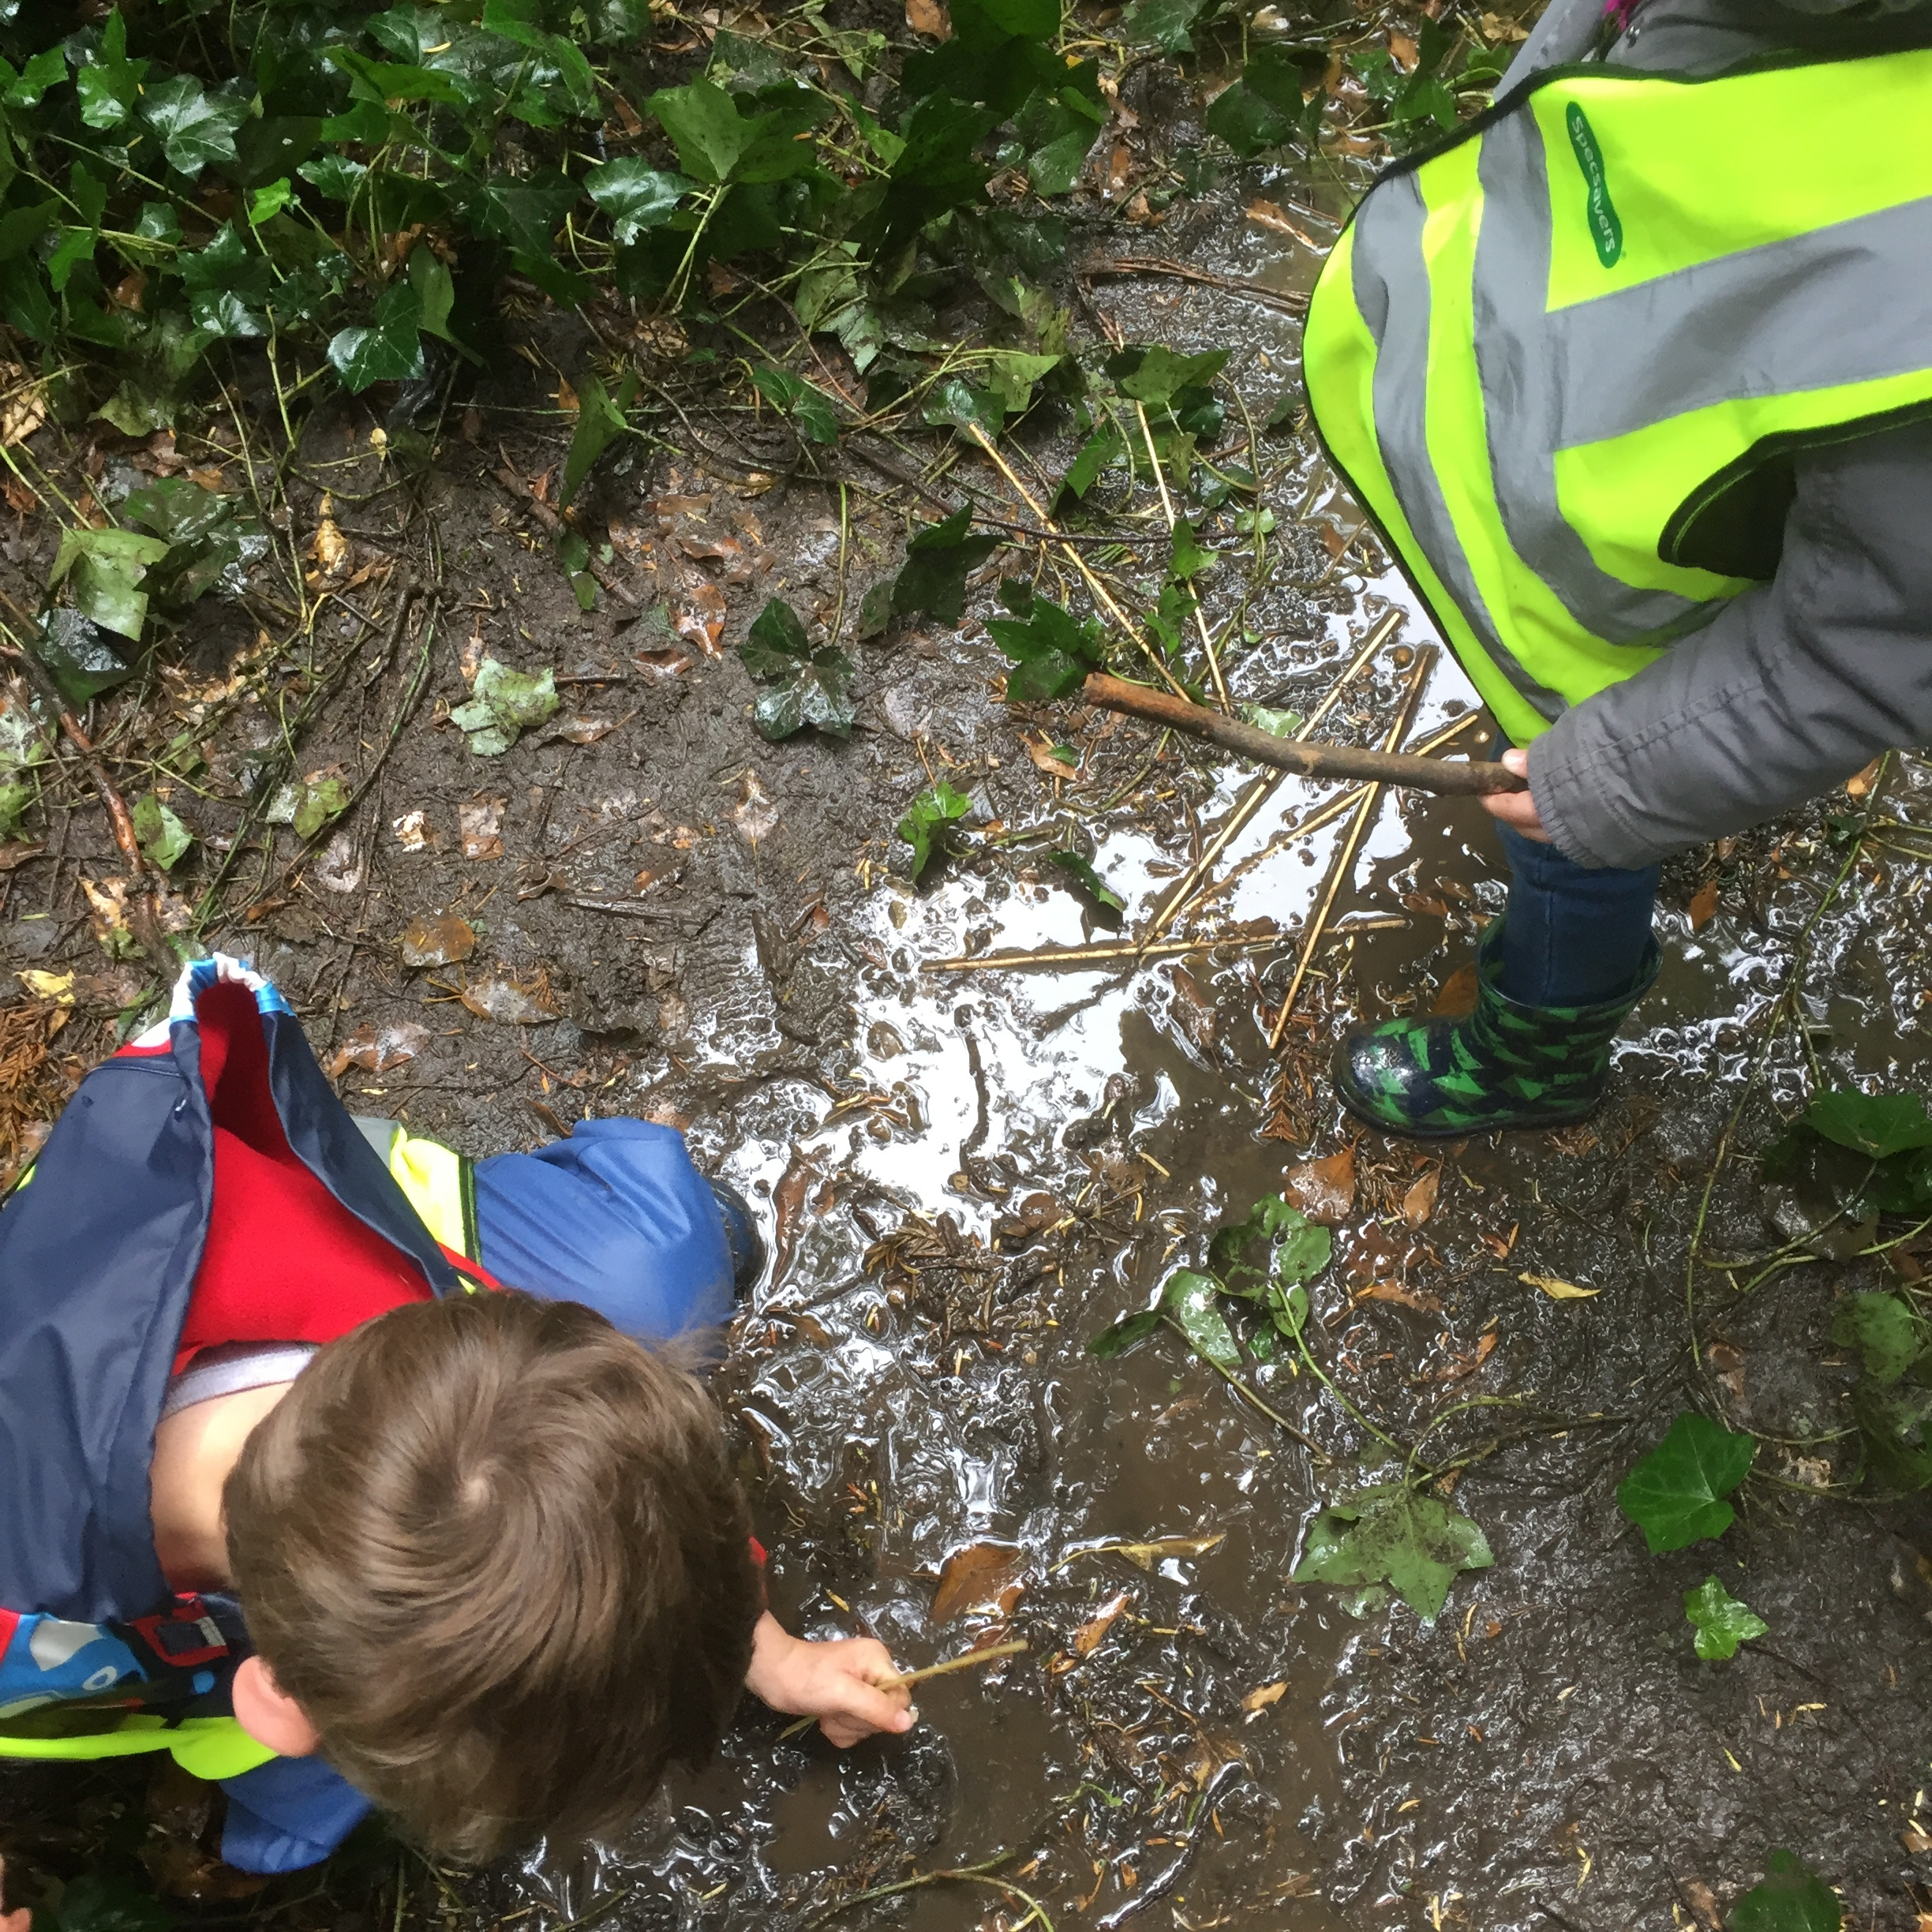 The children loved the muddy stream provided by much needed recent rain.